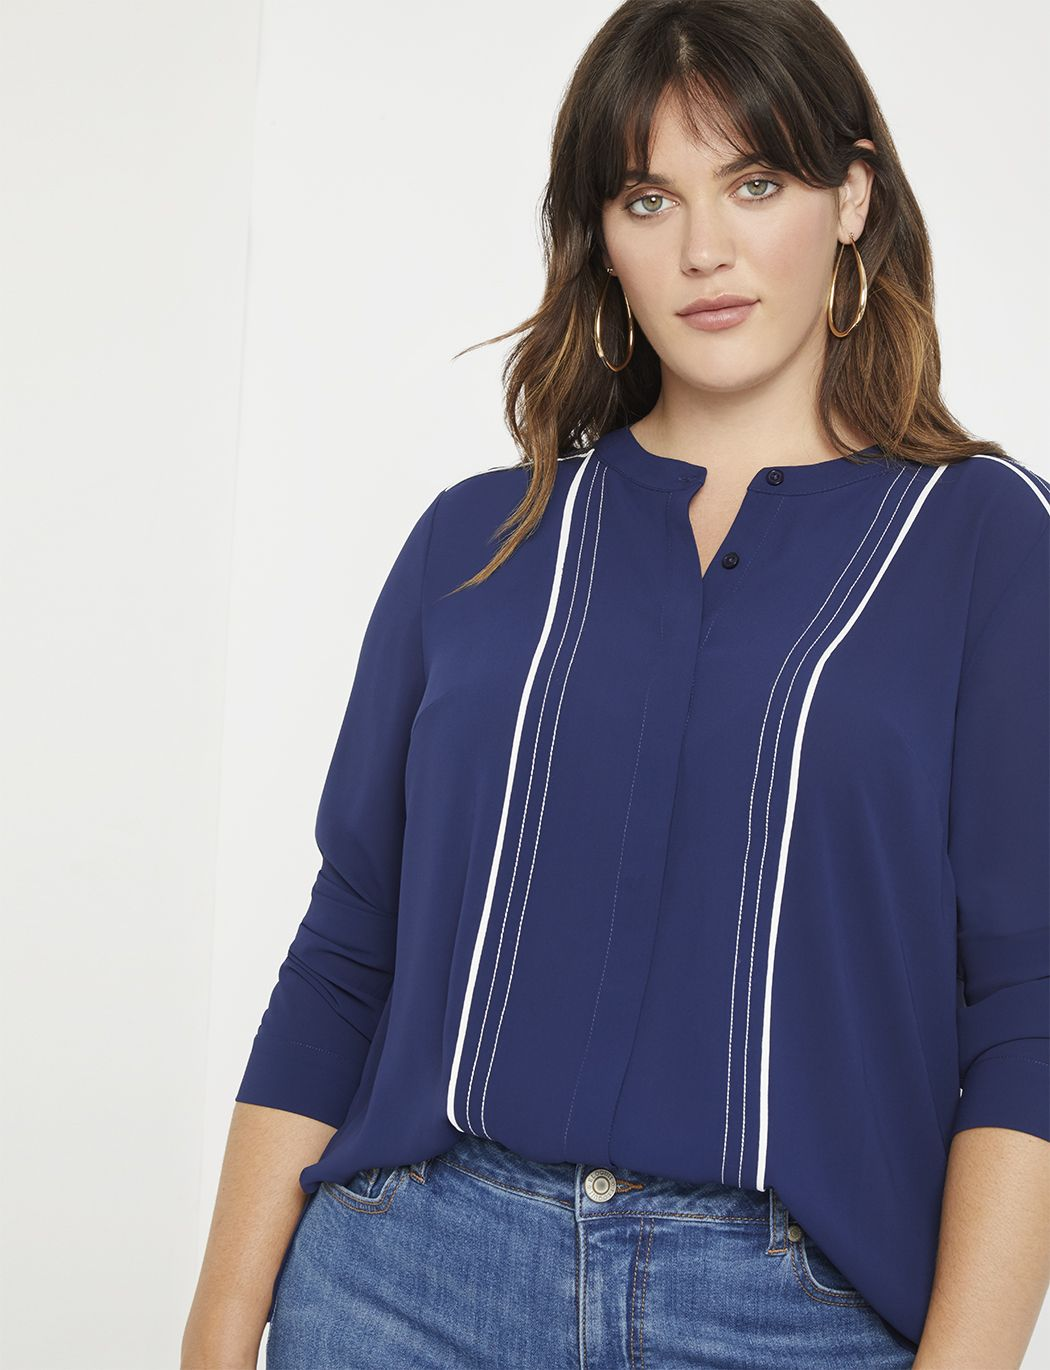 Photo of Contrast Piped Blouse | Women's Plus Size Tops | ELOQUII